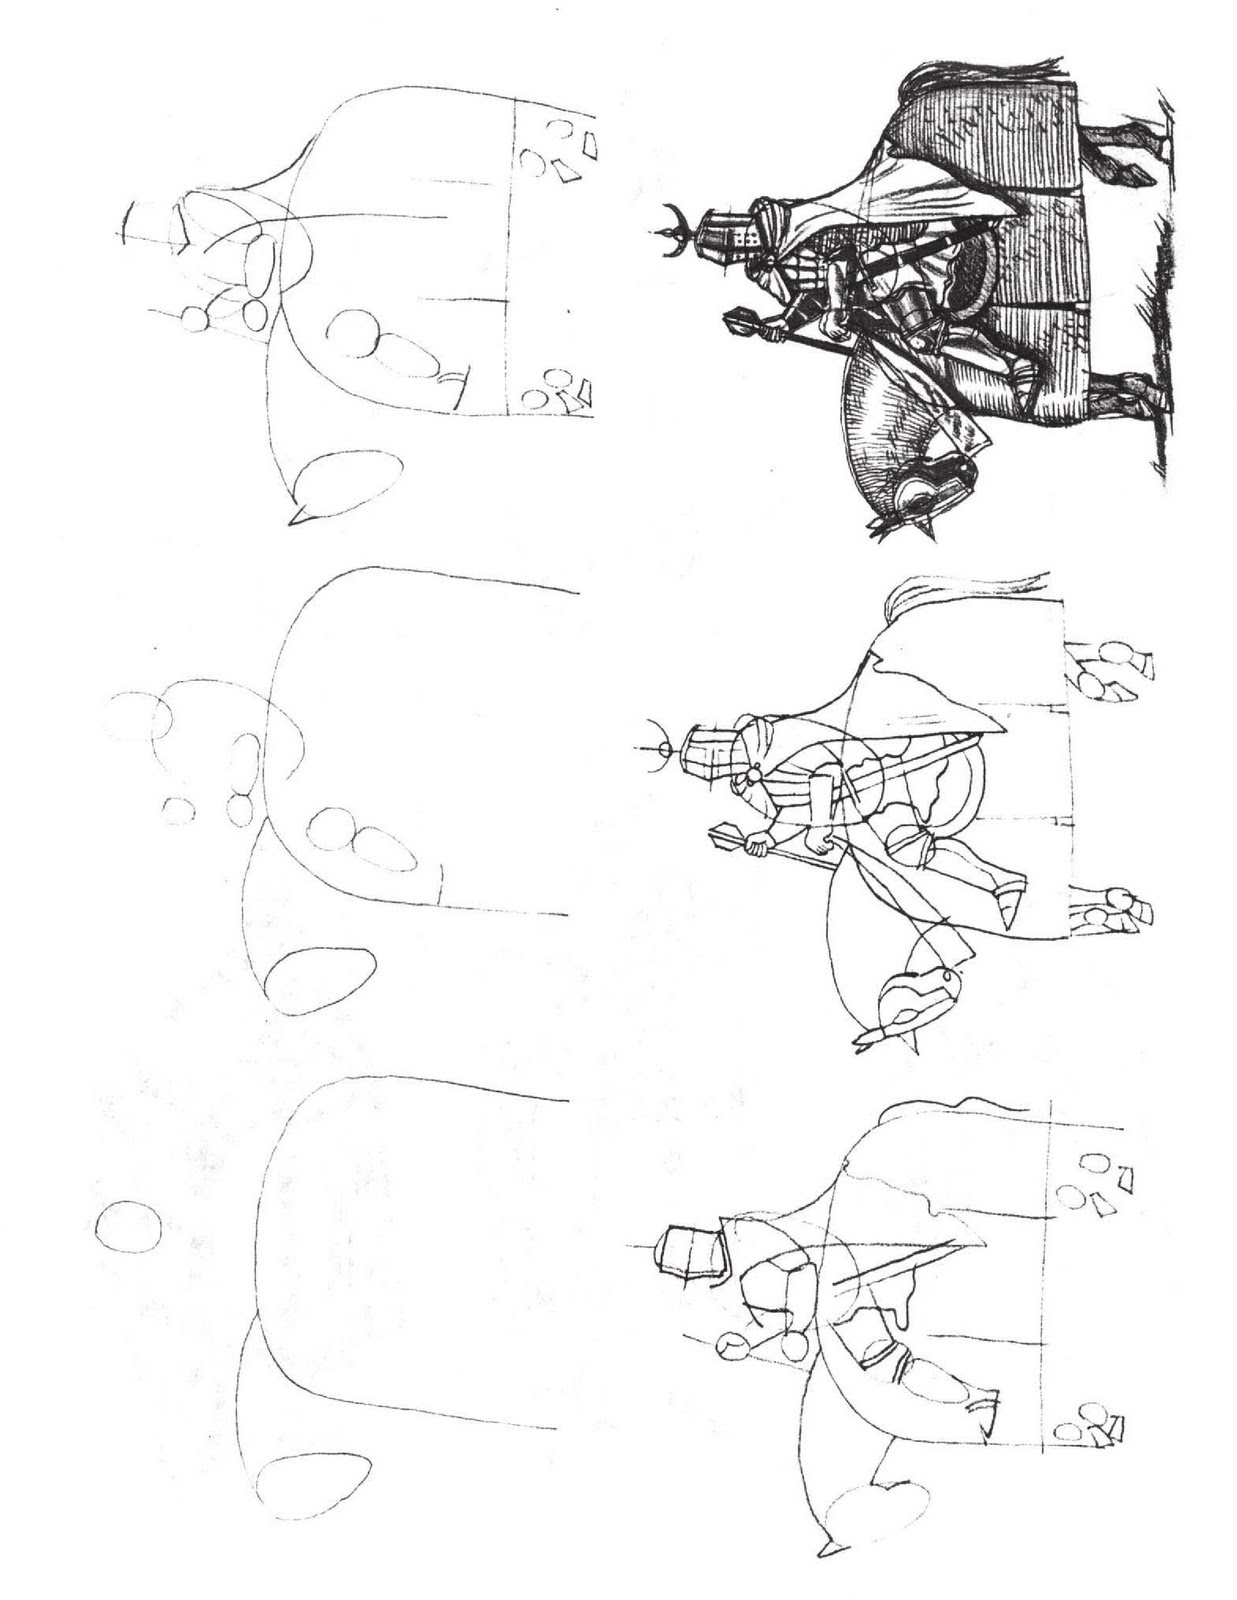 how to draw a knight on a horse knight on horseback drawing at getdrawings free download a draw on horse knight to a how